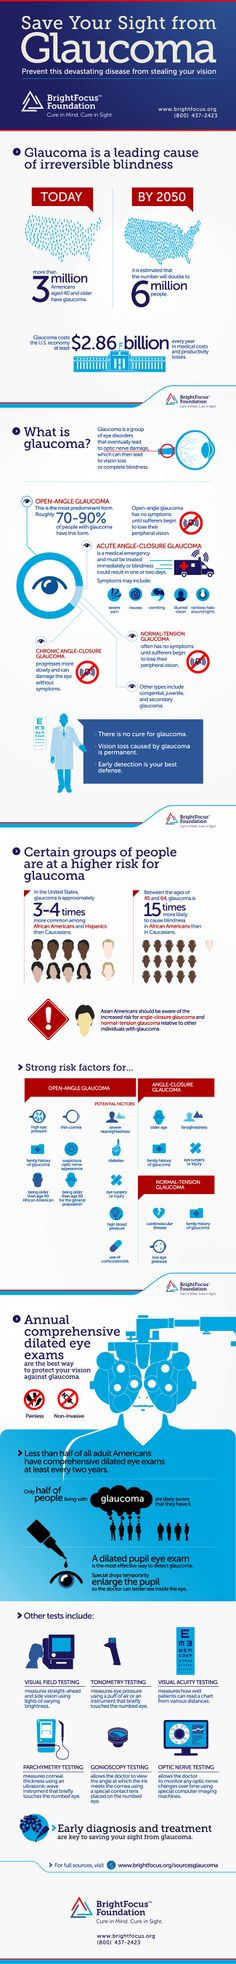 Save Your Sight From Glaucoma. Prevent this devastating disease from stealing your vision. #infographic #SnapShot Produced by BrightFocus Created by visual.ly. #glaucoma #glaucomaawarenessmonth